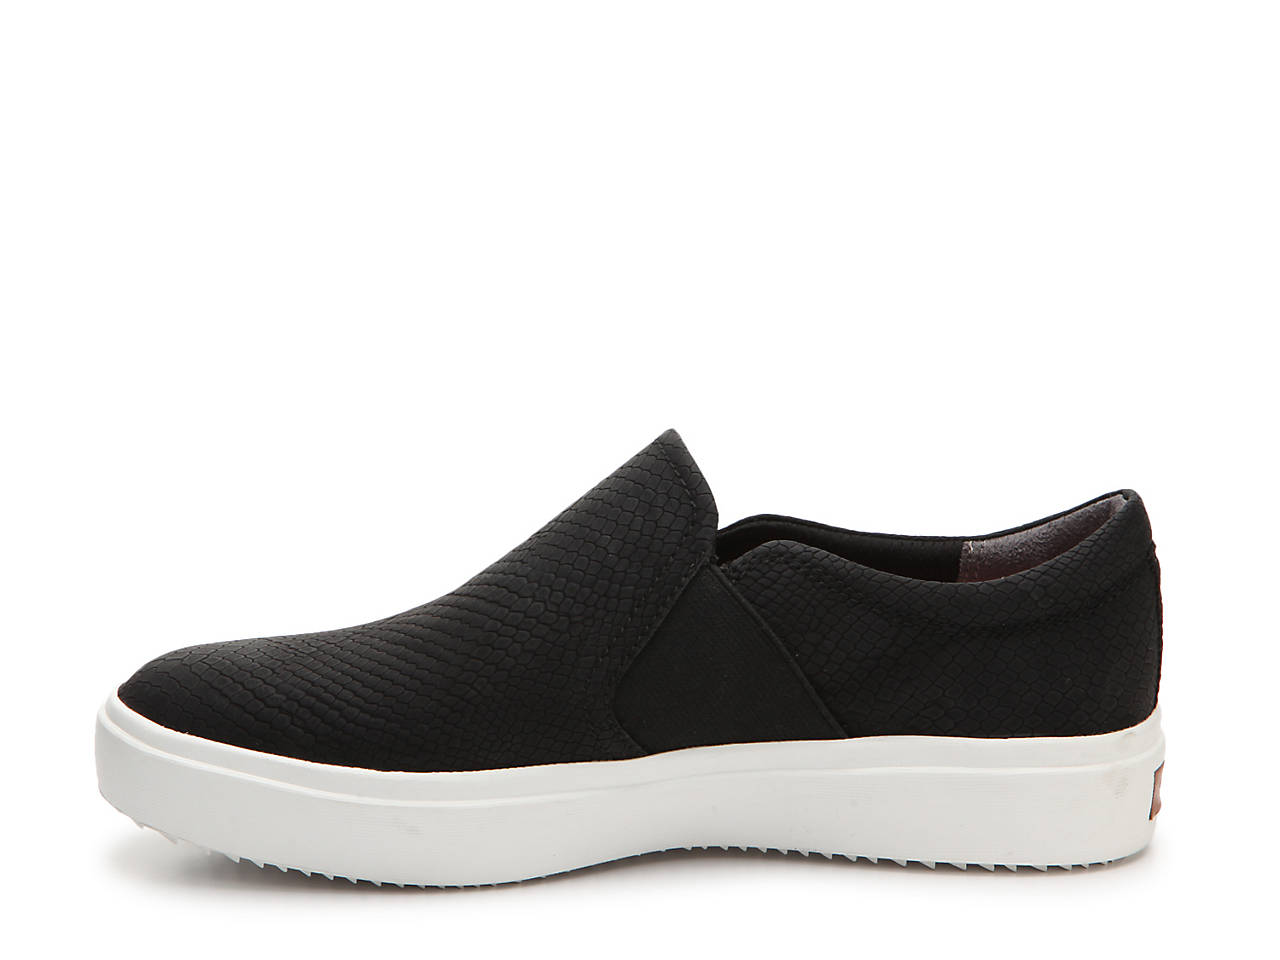 13f8ad630283 Dr. Scholl s Wander Up Slip-On Sneaker Women s Shoes